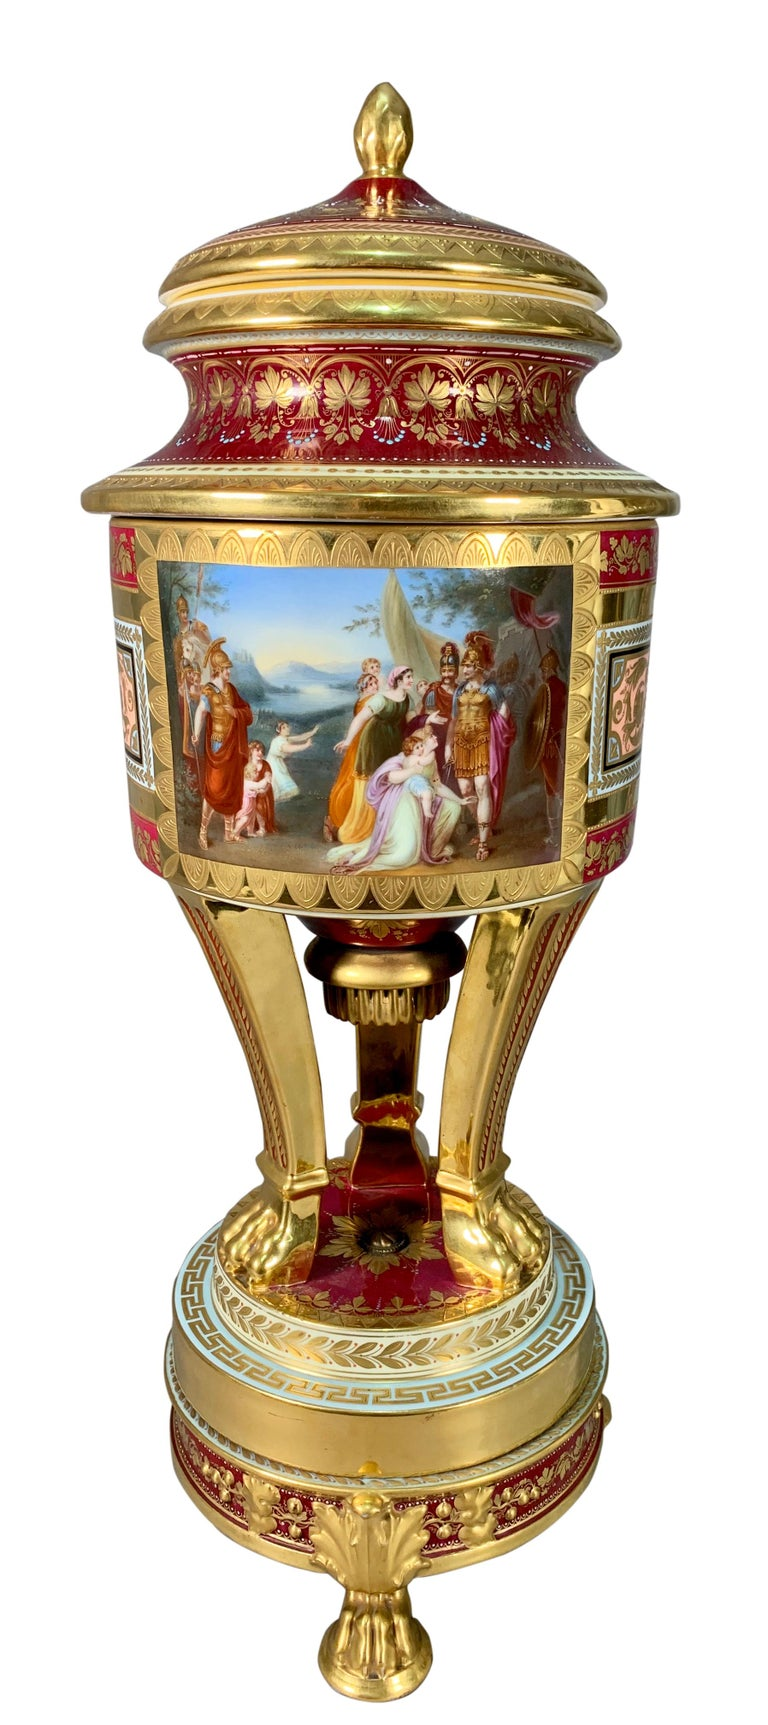 A fine quality 19th century Royal Vienna hand painted porcelain covered Potpourri vase / urn. Constructed in three pieces with a lid and a second central section resting on a stepped plinth base with 3 fluted legs having claw feet and a cylindrical